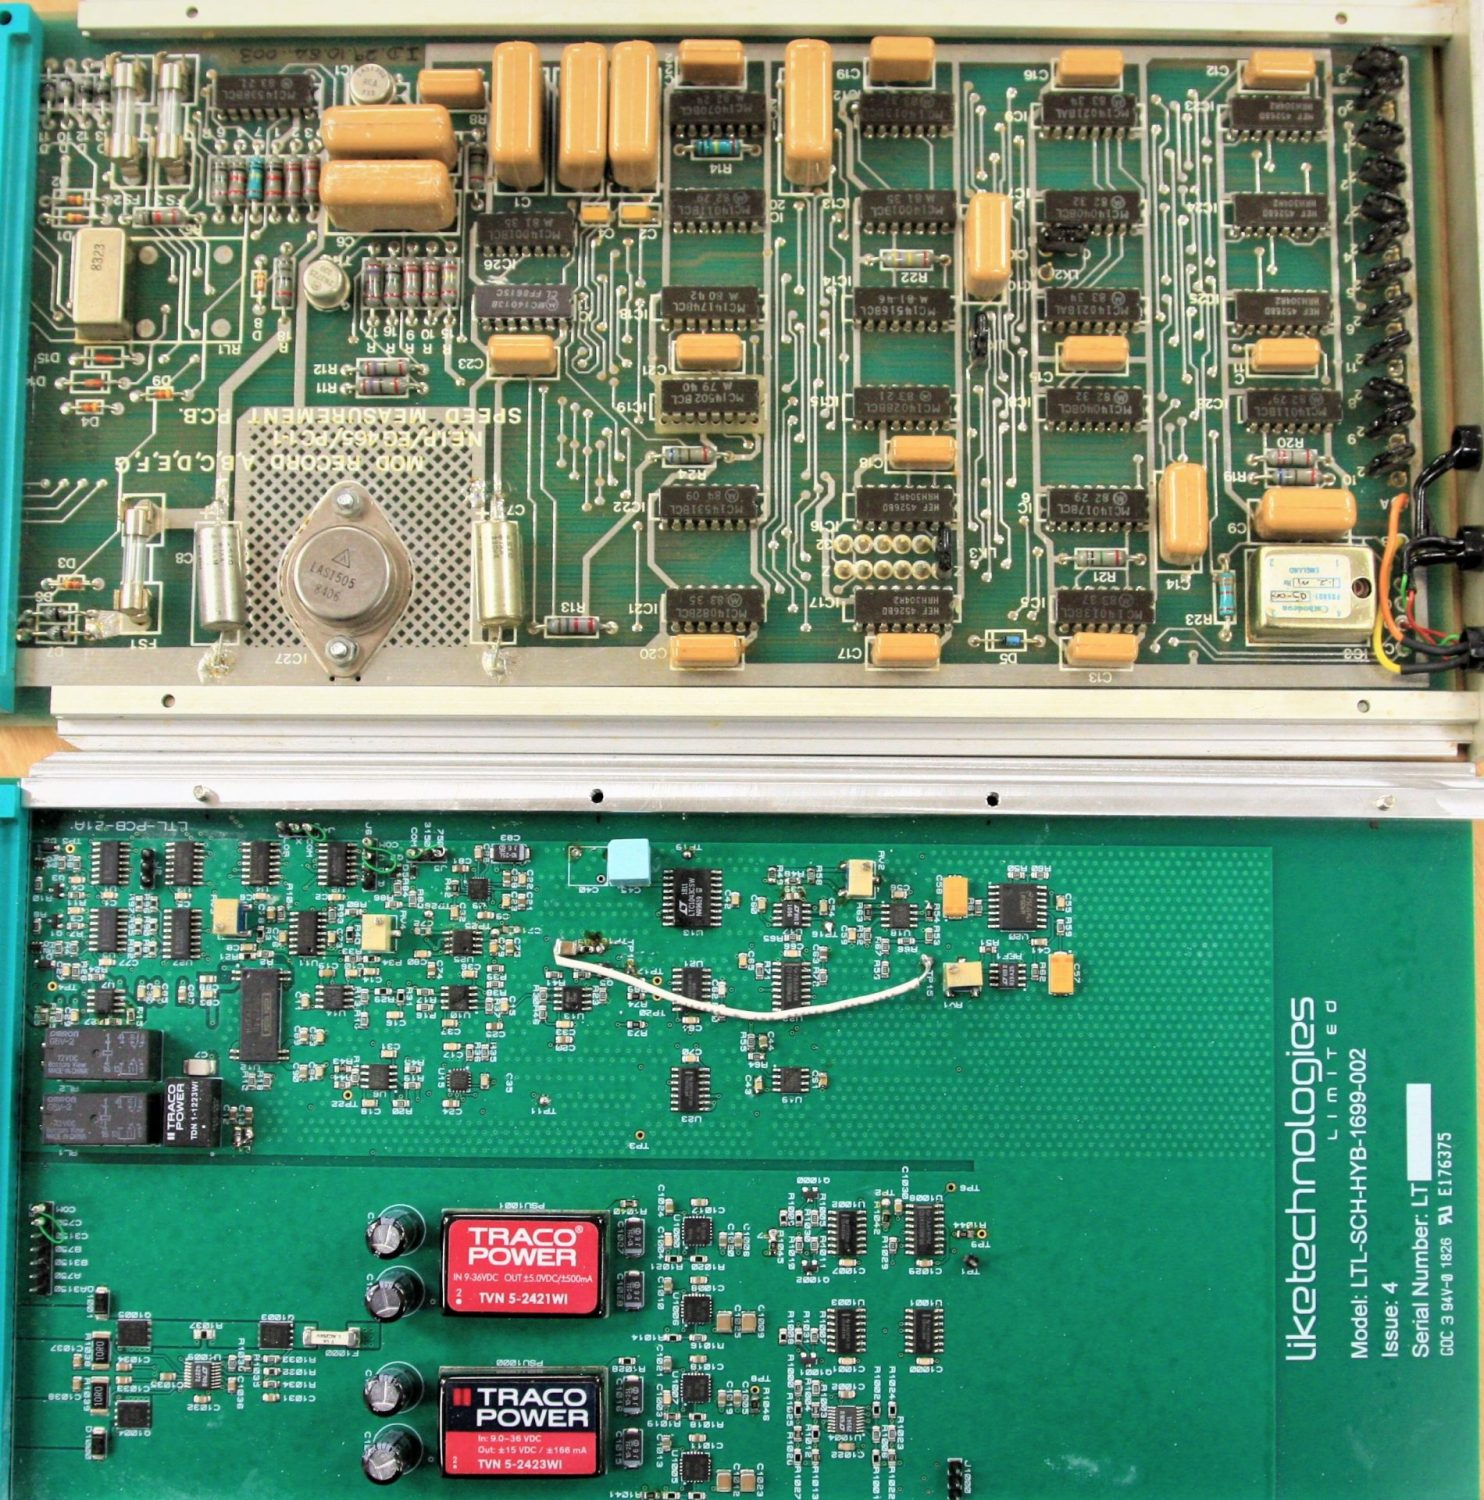 Like Technologies offer re-engineering and reverse engineering services